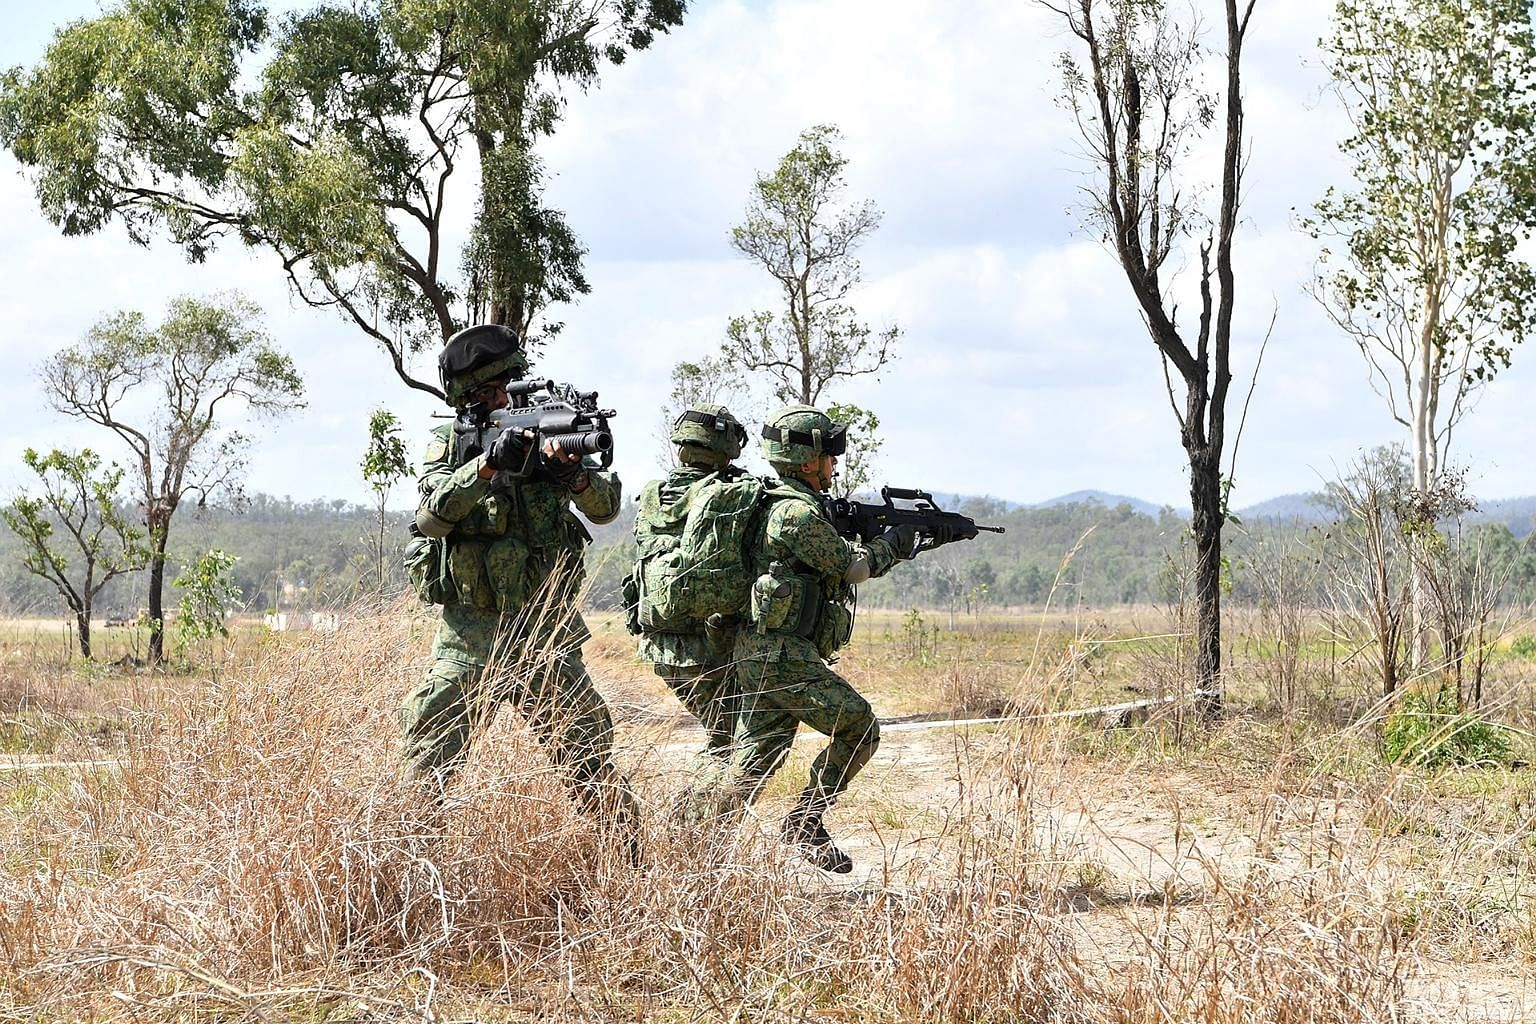 Singapore Armed Forces troops taking part in Exercise Wallaby in Australia last year. The exercise, Singapore's biggest overseas, is among those suspended because of Covid-19. Exercise Wallaby is usually held in the later part of the year at the Shoa